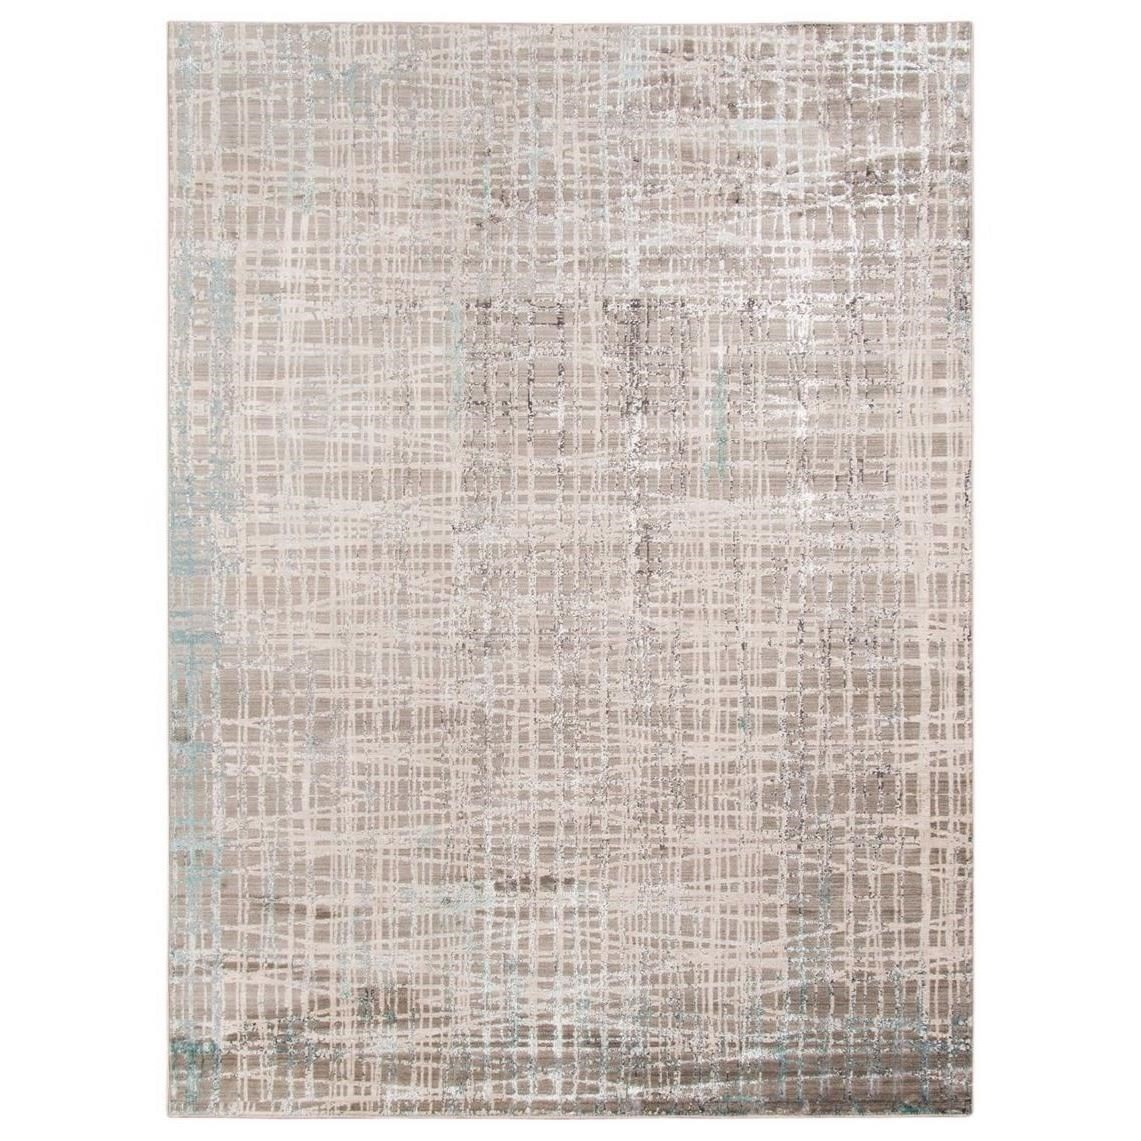 Rugs Cameran Blue 5 X 7 Rug by Uttermost at Adcock Furniture